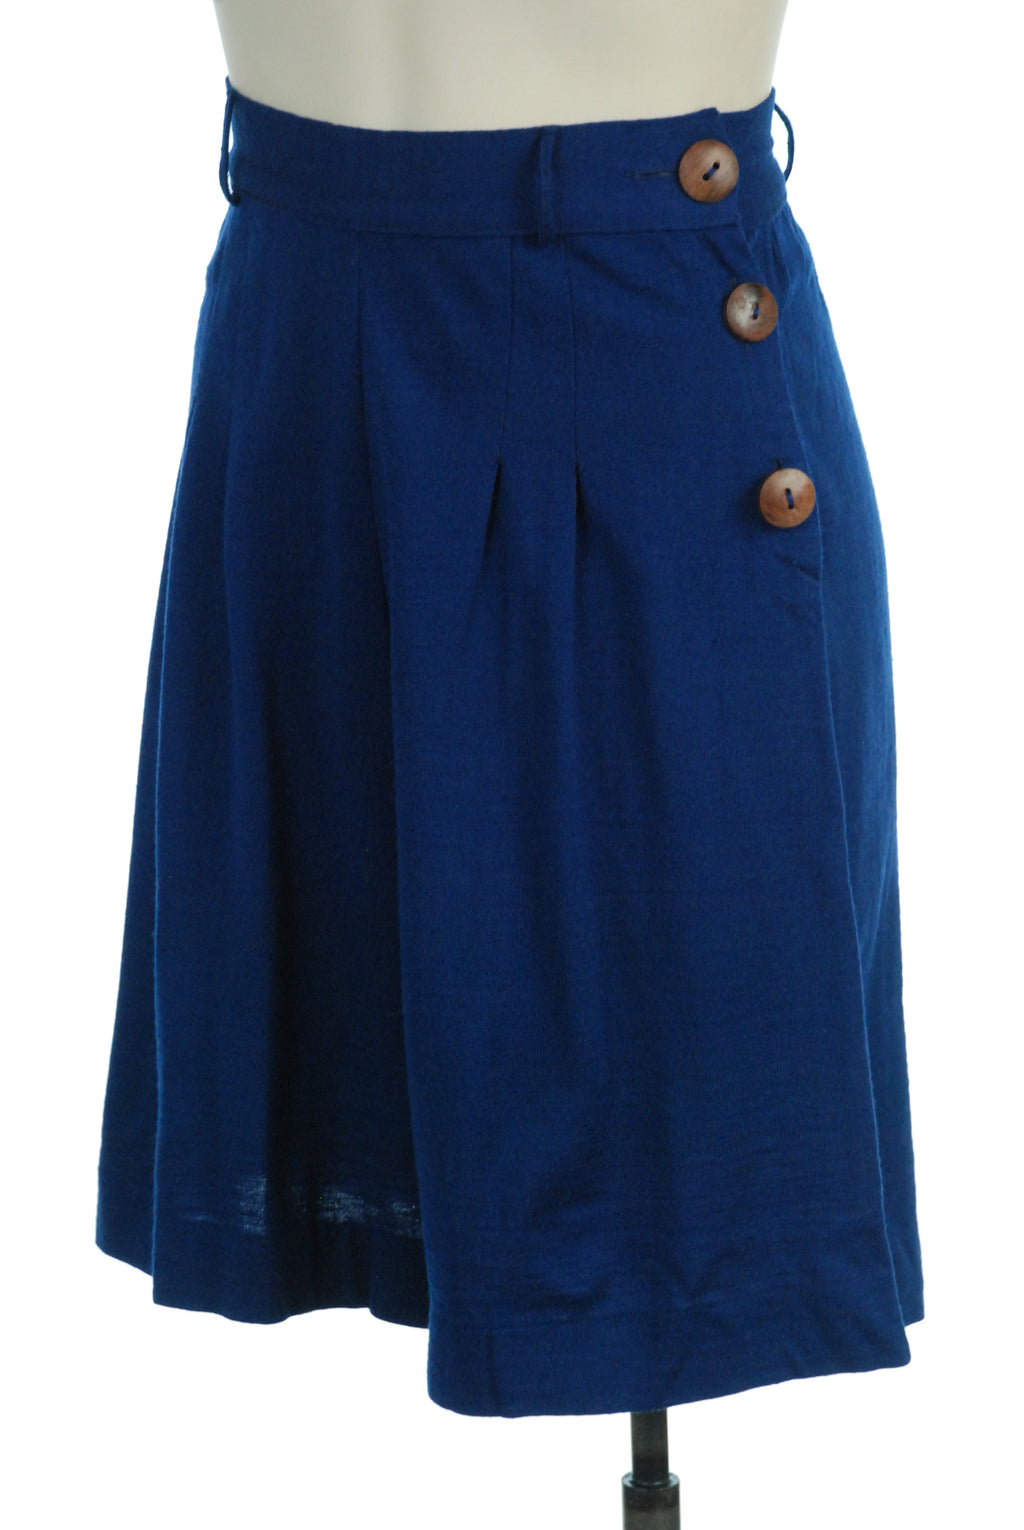 Fantastic 1930s NRA Tag Shorts in Blue Wool Jersey with Wooden Buttons